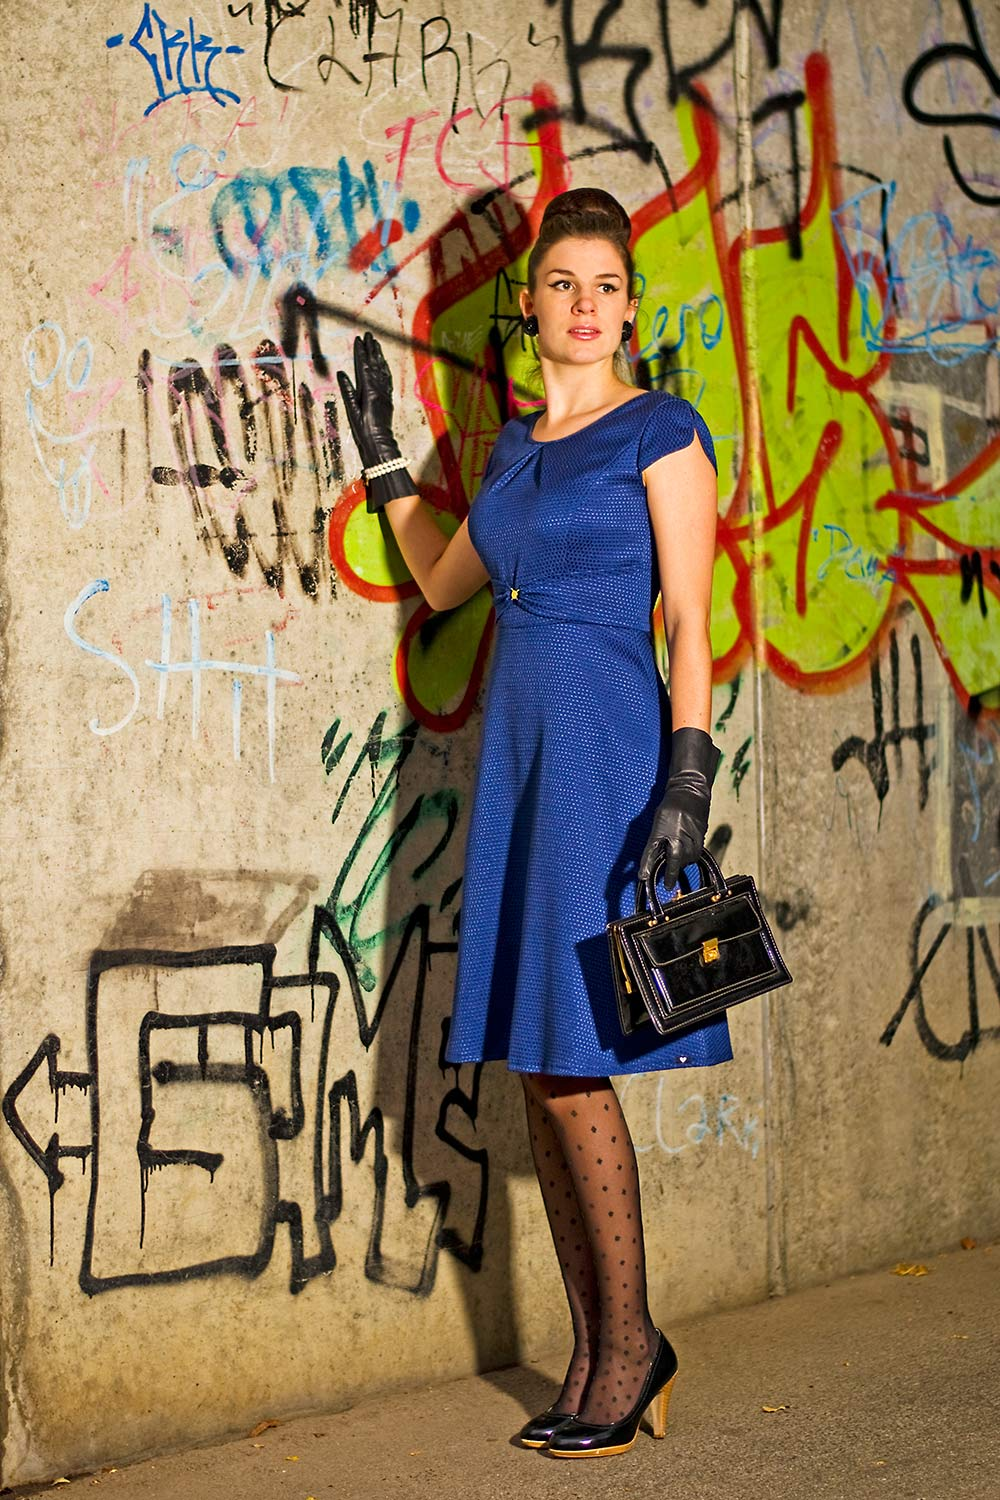 RetroCat wearing a blue 50s inspired dress and matching tights